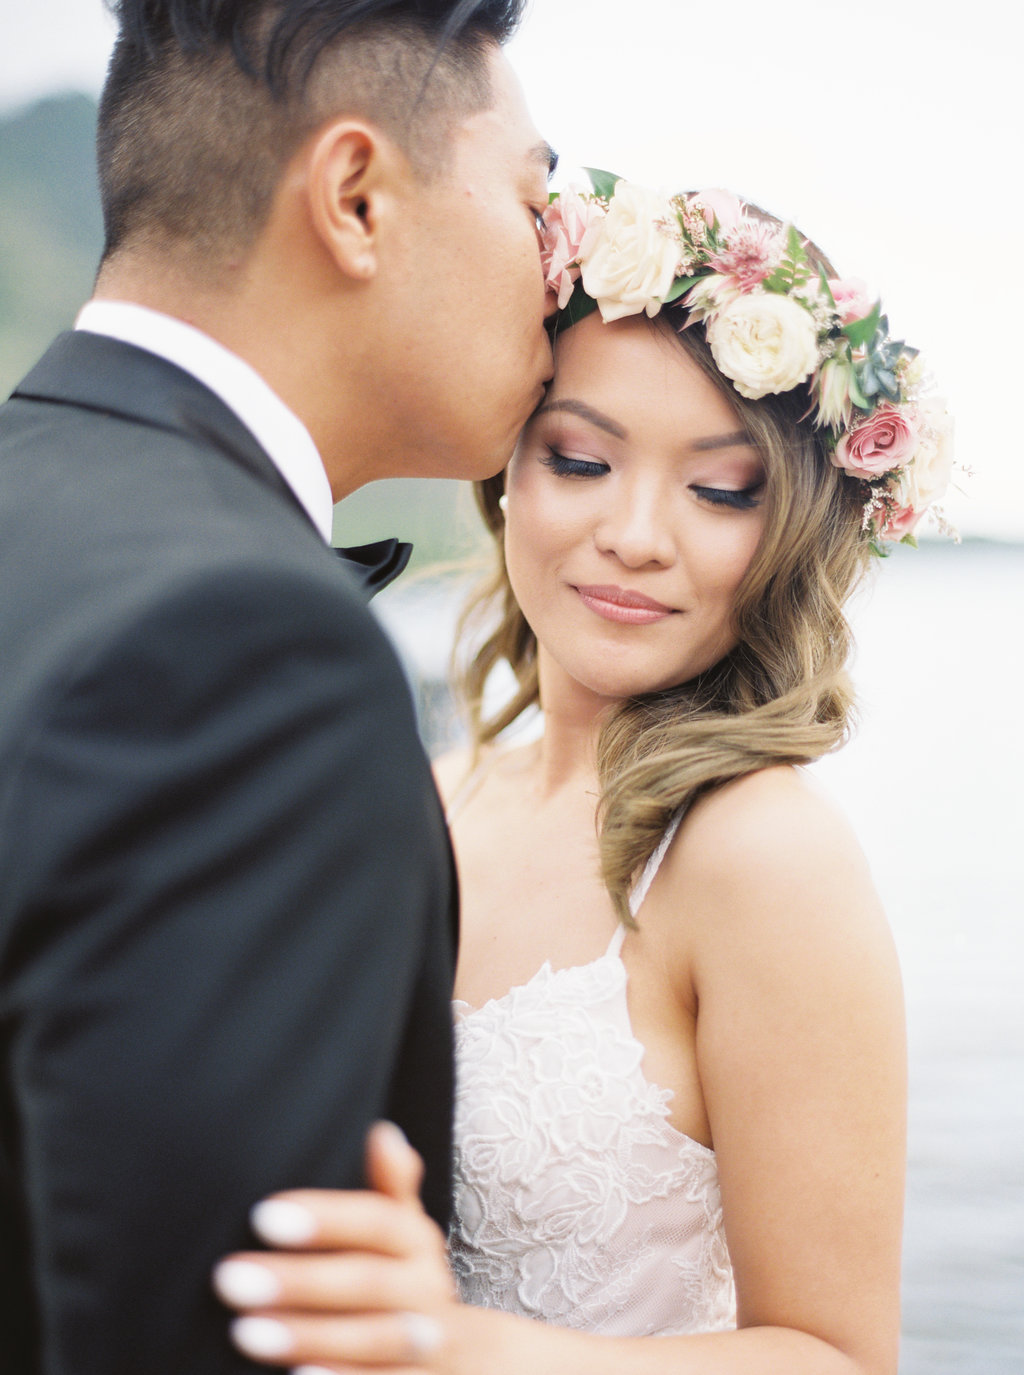 This Bride Looked Dazzling in her Flower Crown